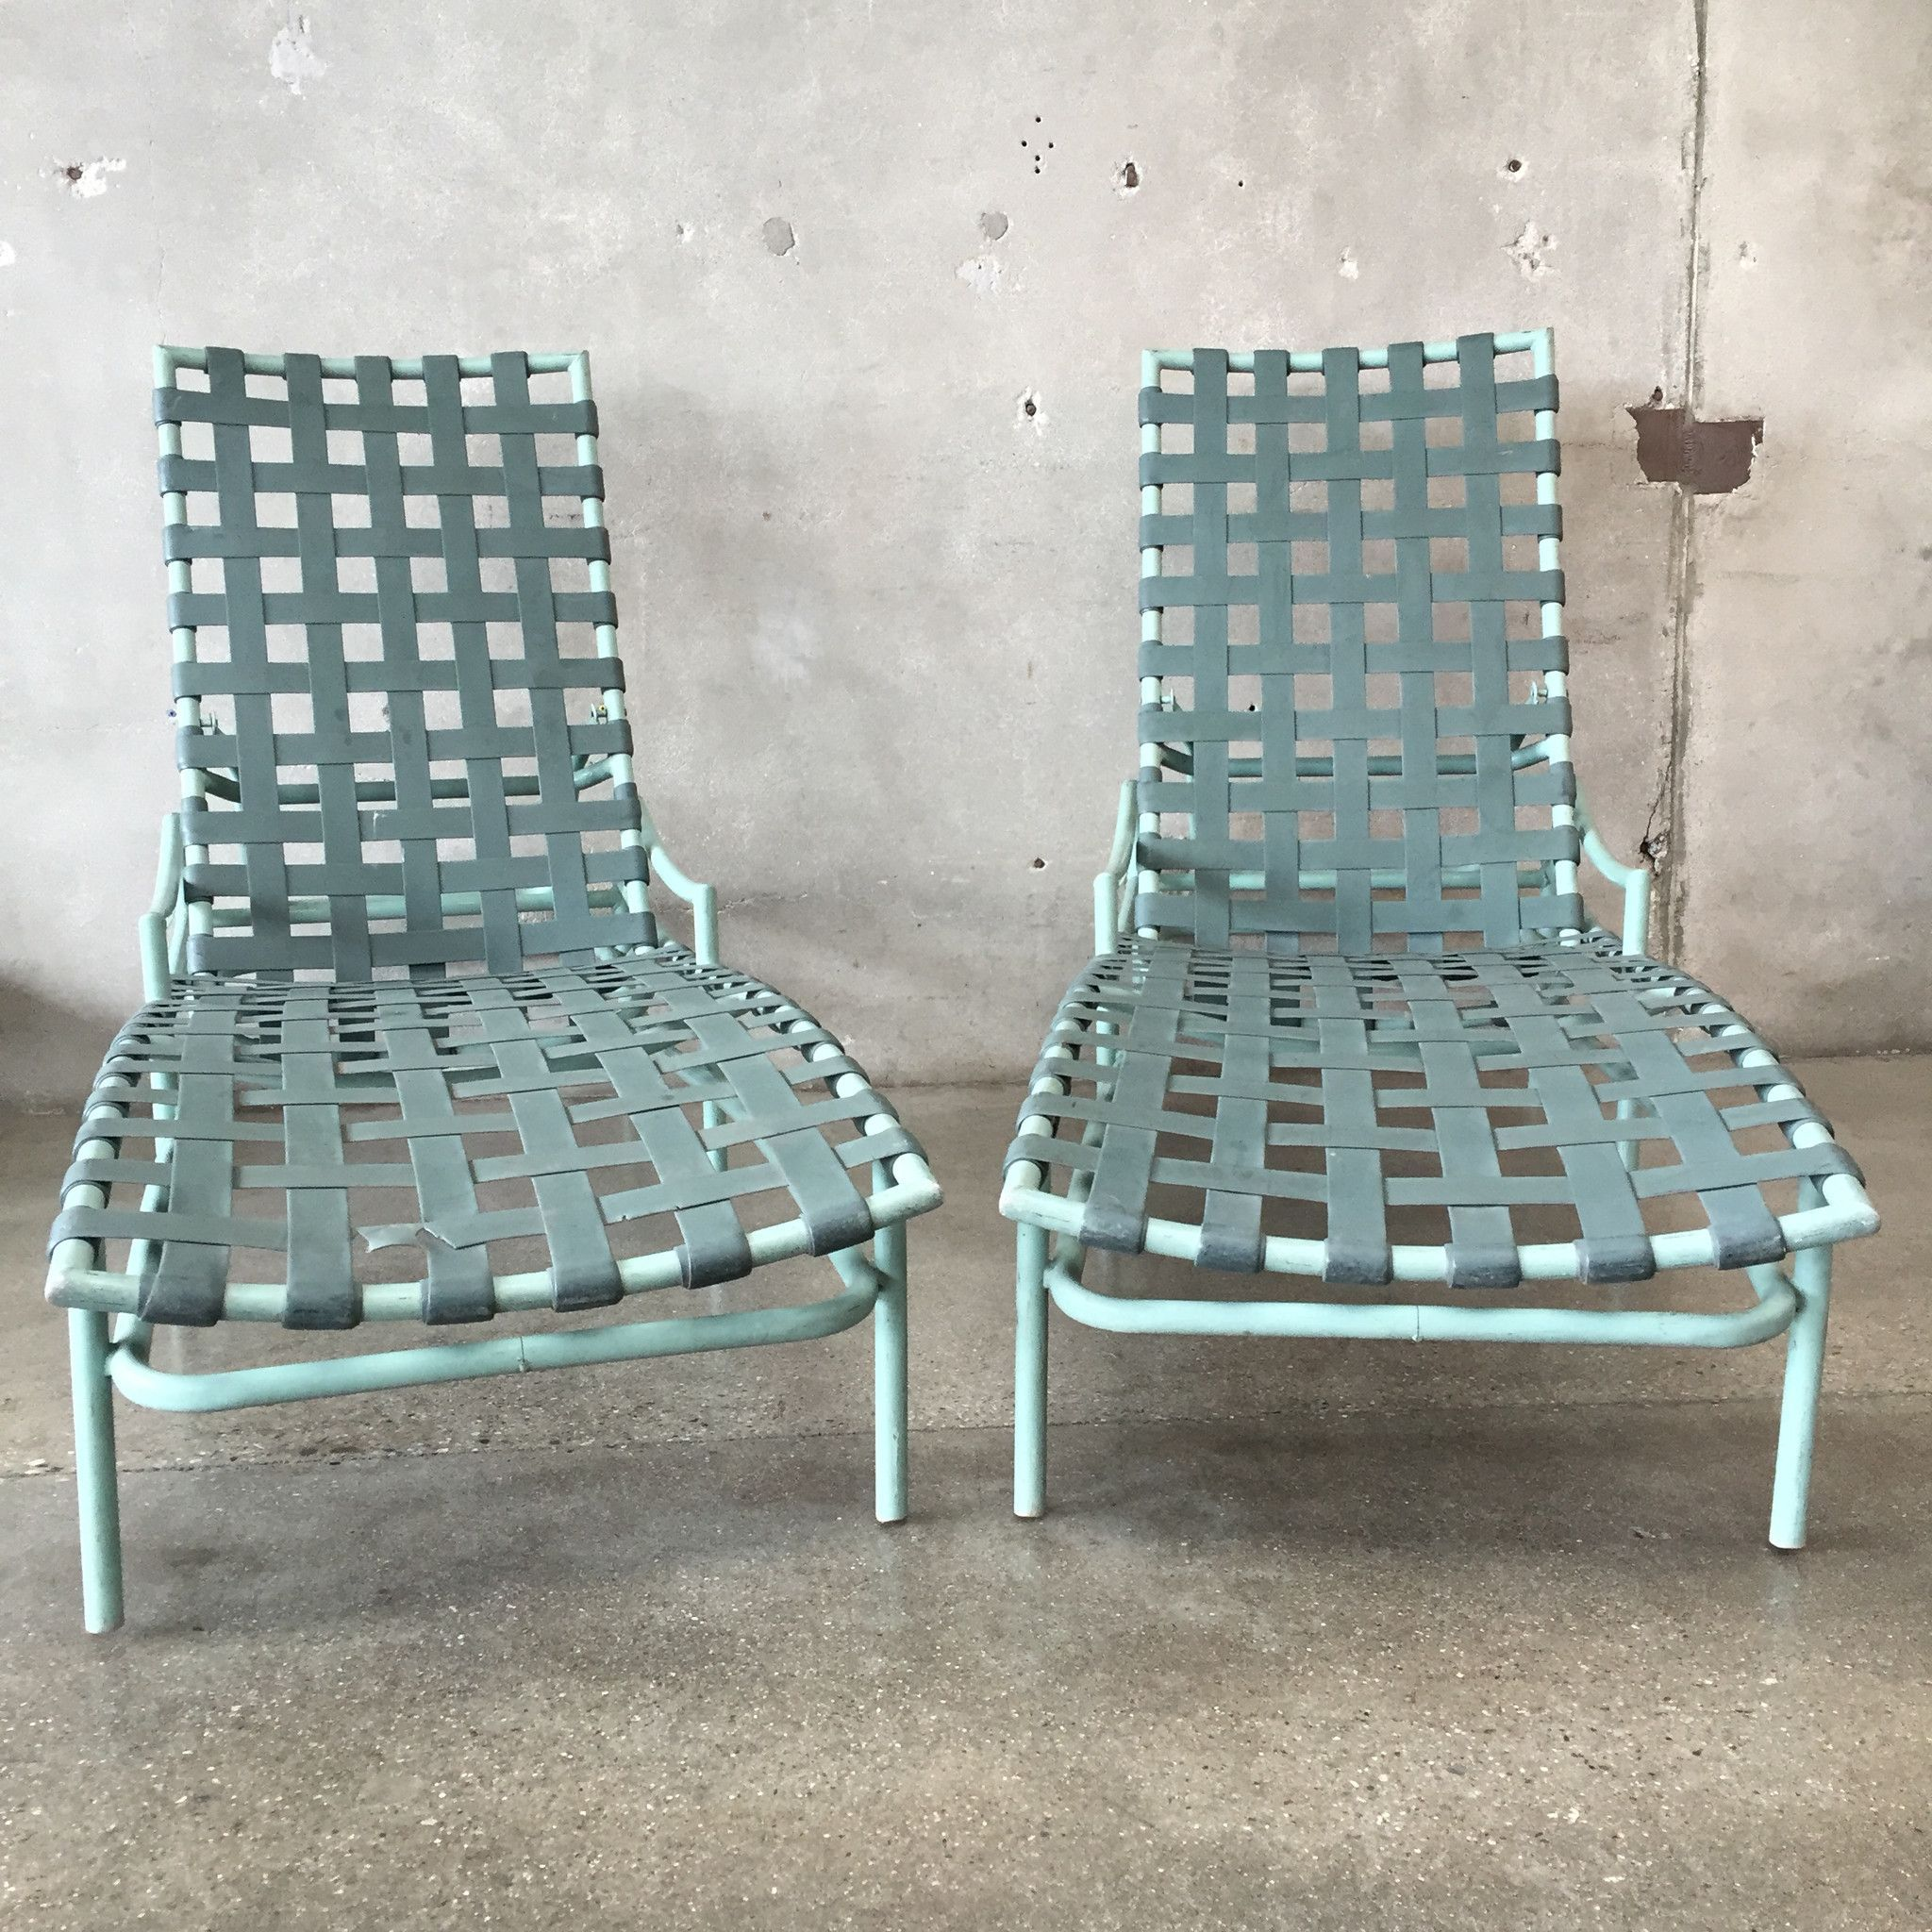 Tropitone Lounge Chairs East Coast Chair And Barstool Reviews Pair Of Patio Chaise Since 1954